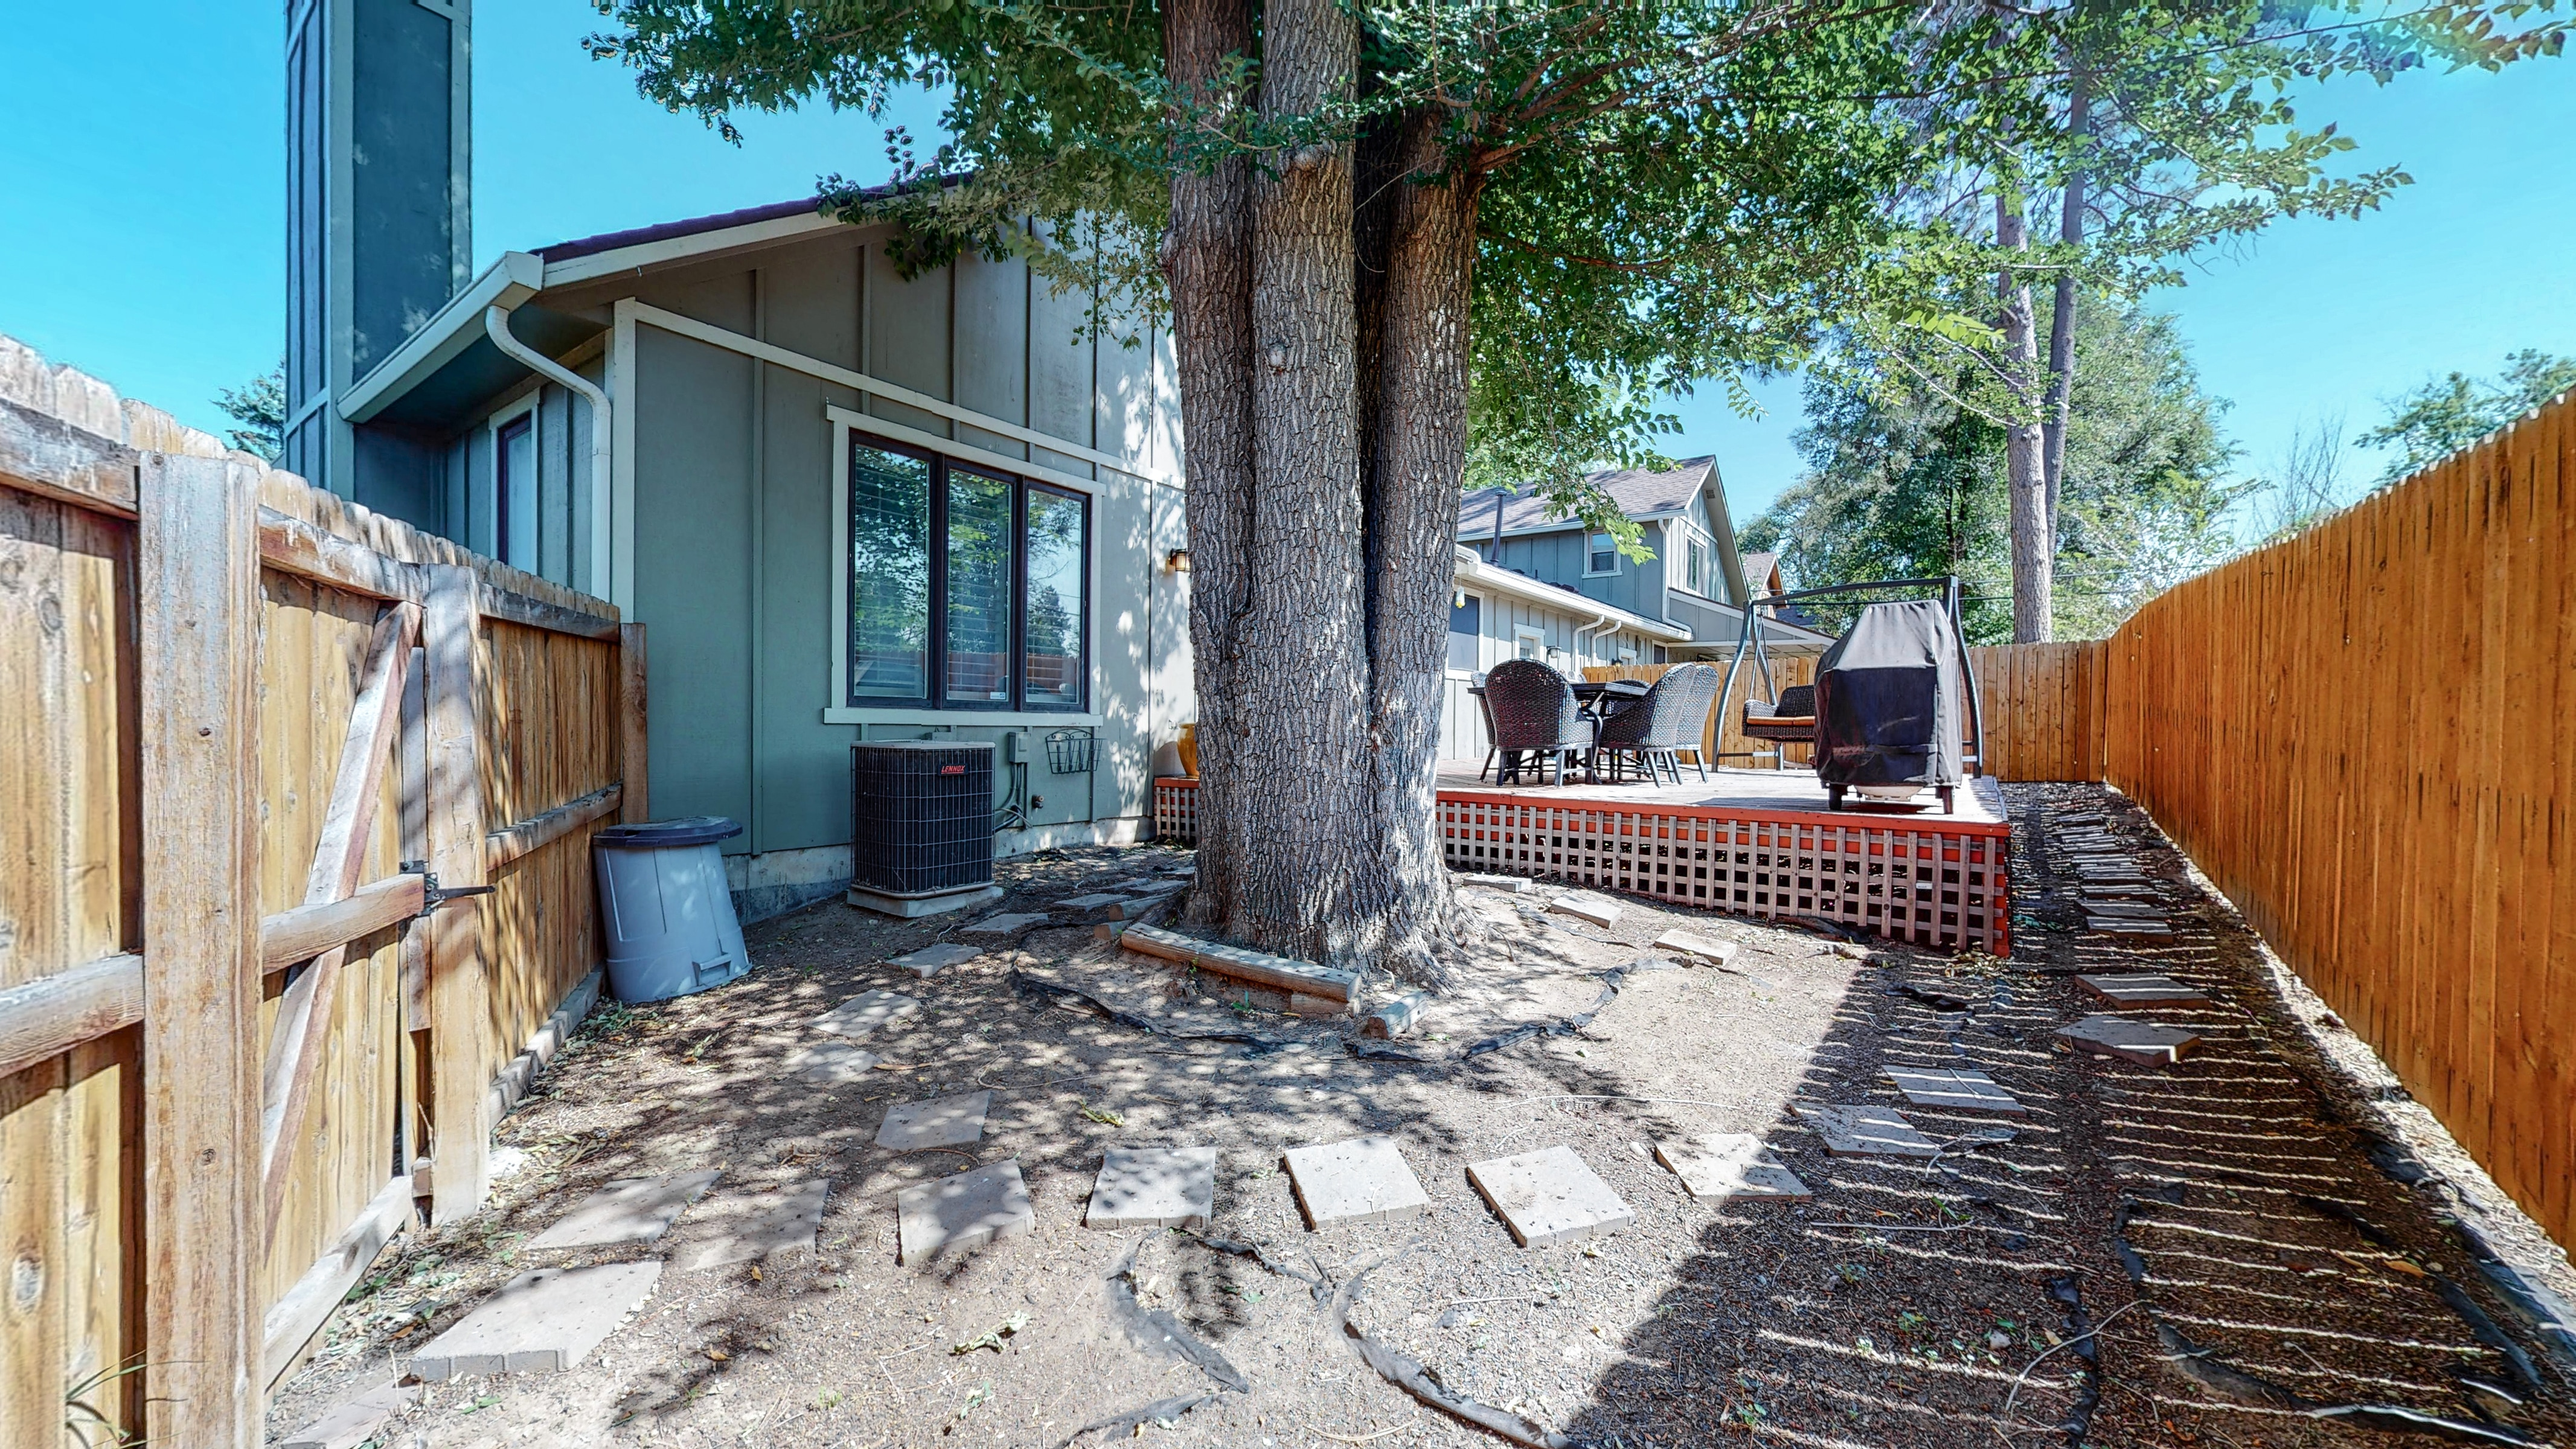 Home for sale in Arvada with private back yard